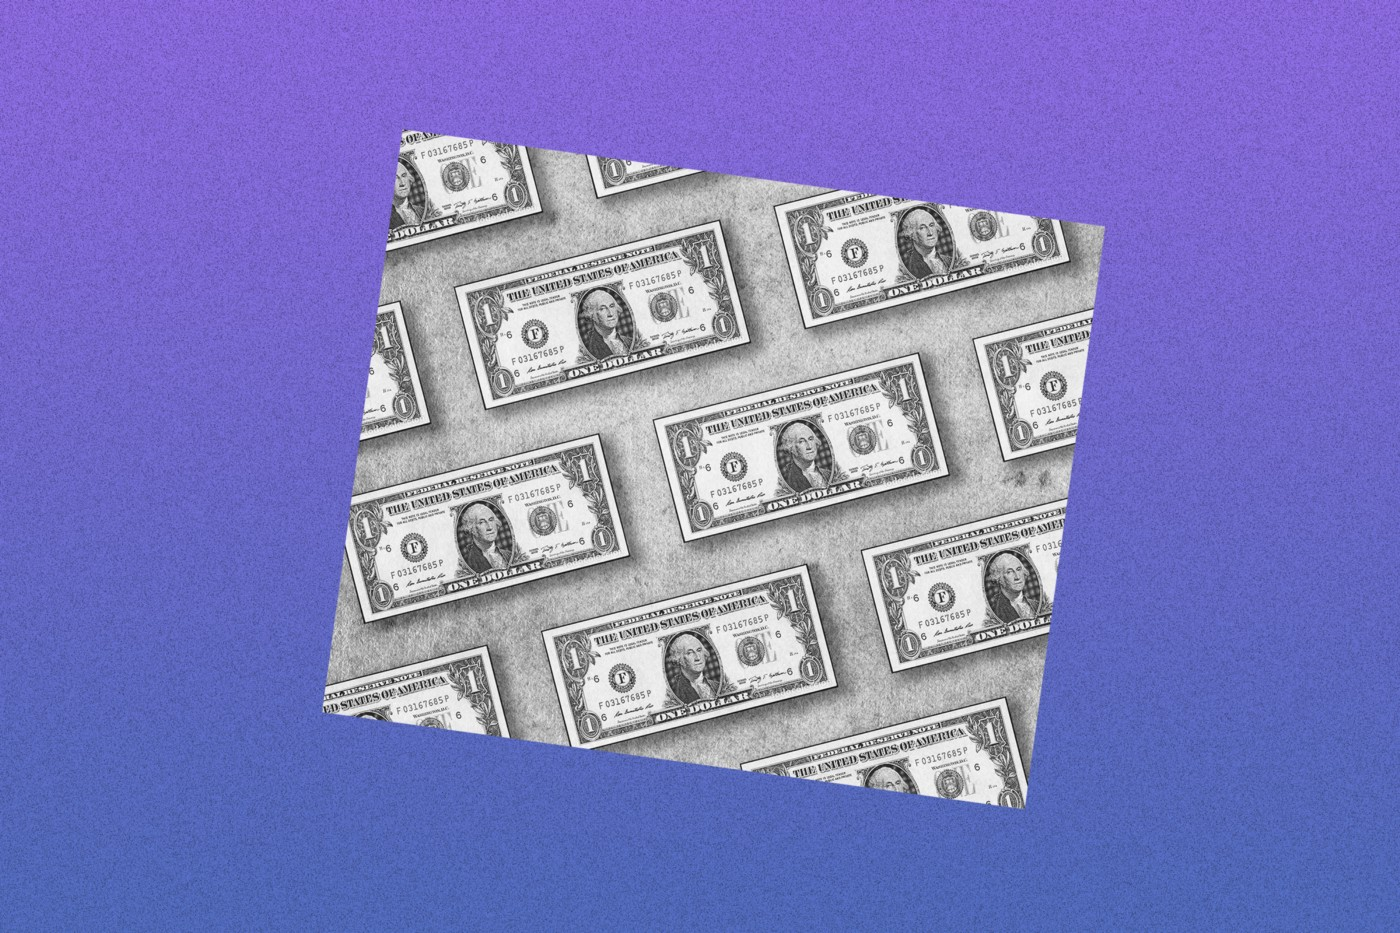 Black and white photo of one USD bills against a purple gradient background.